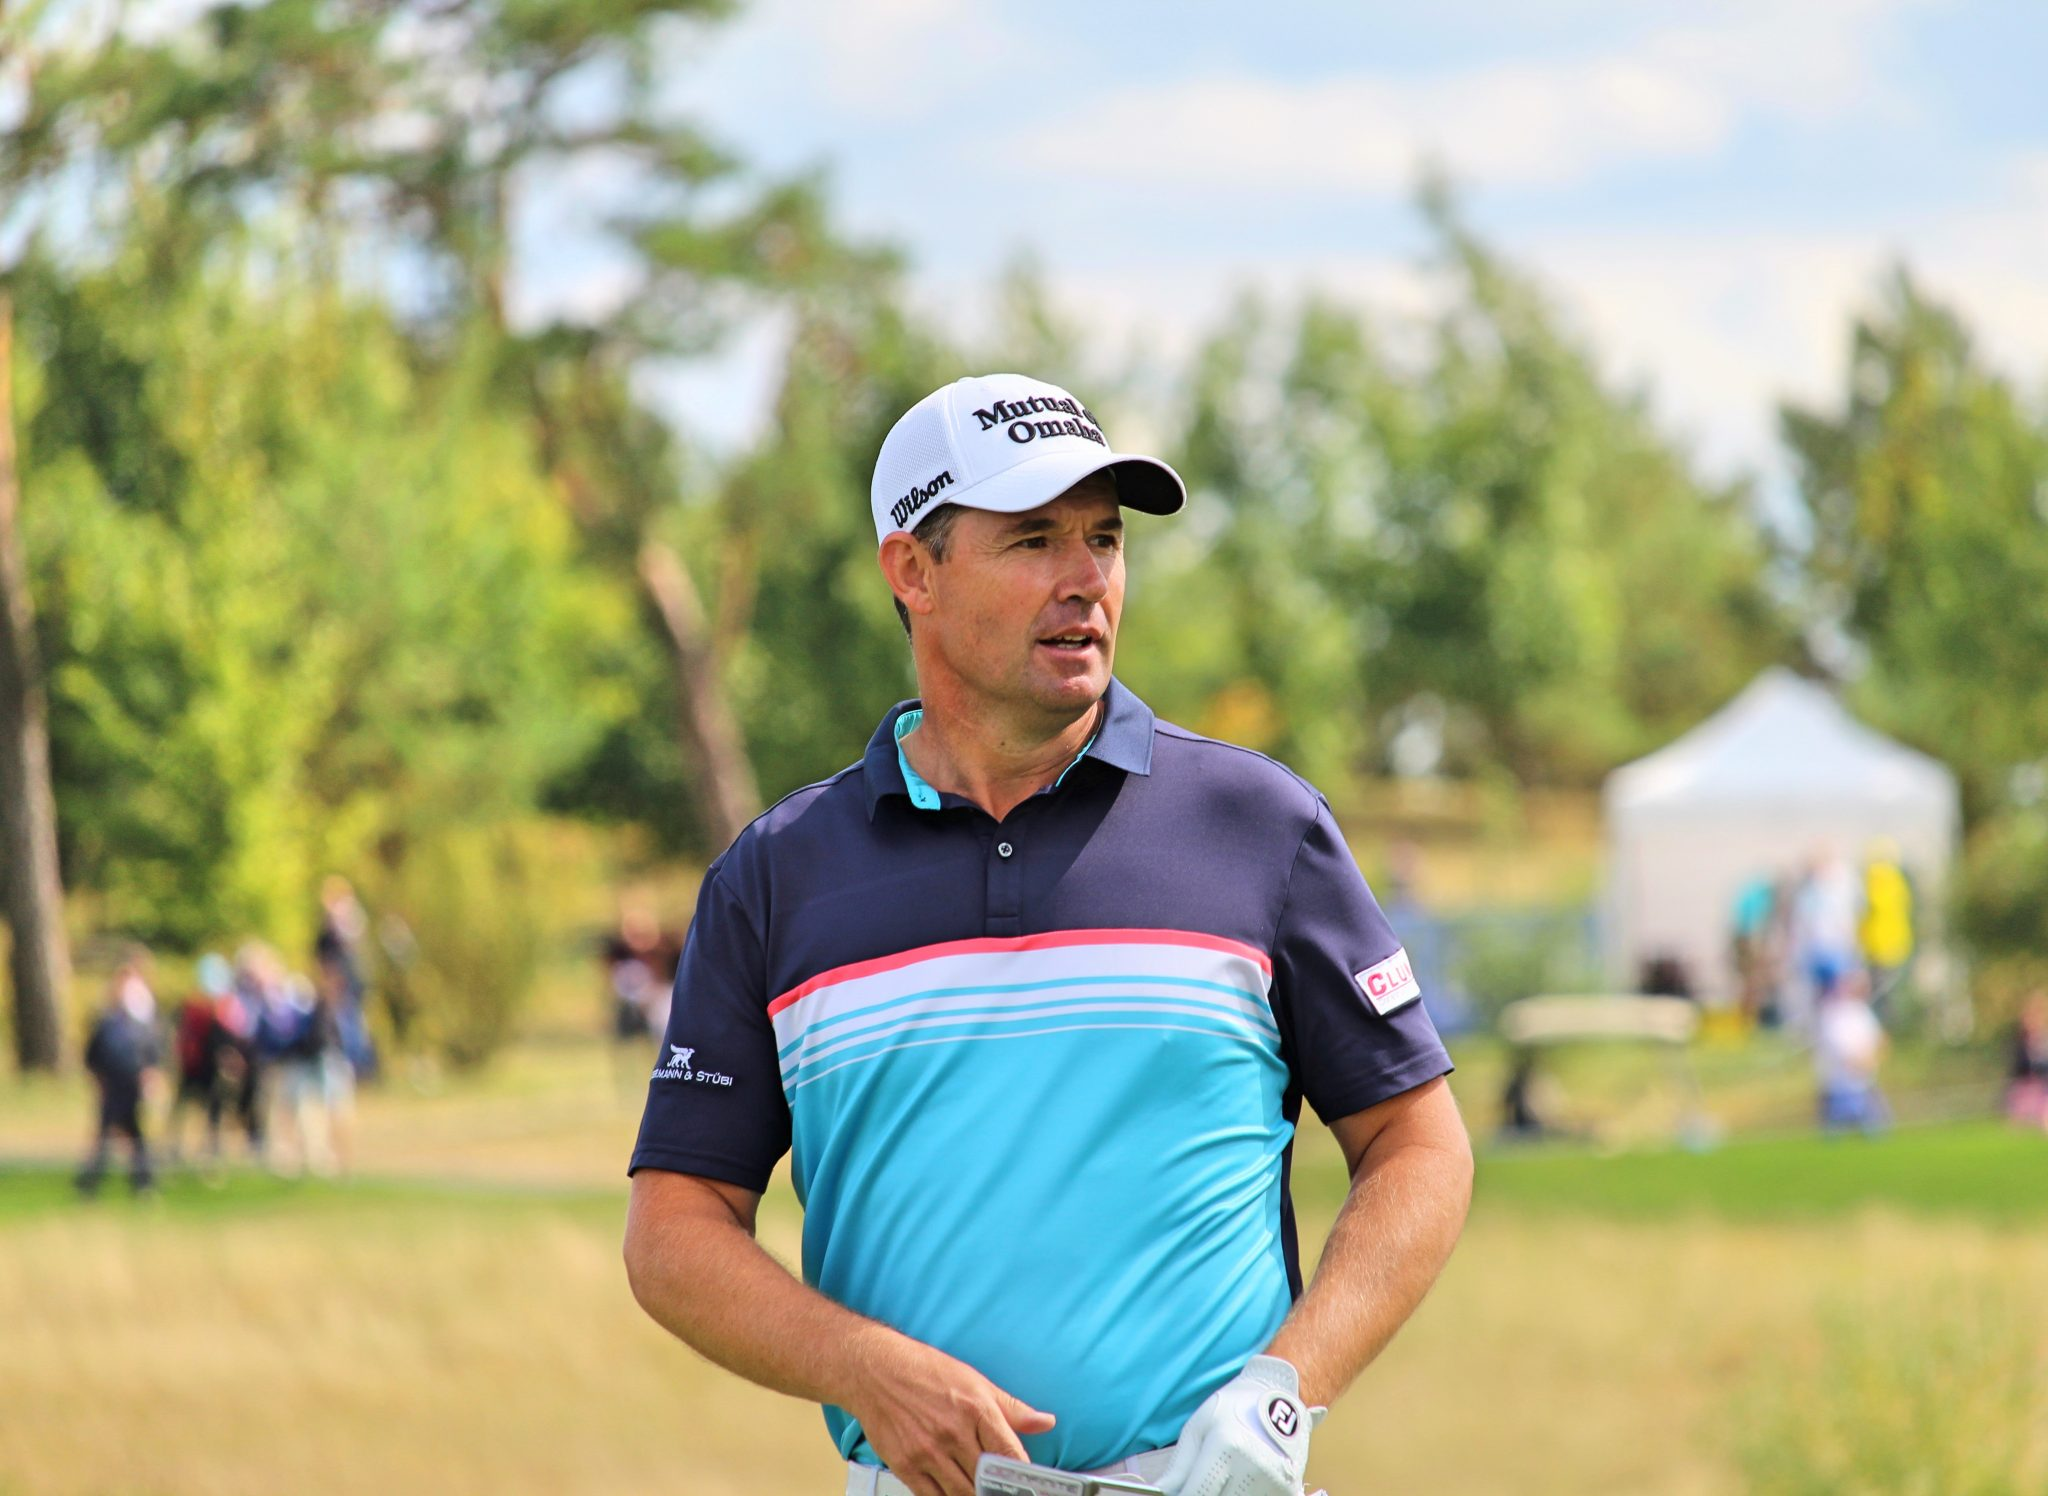 Ryder Cup 2020 captain Padraig Harrington